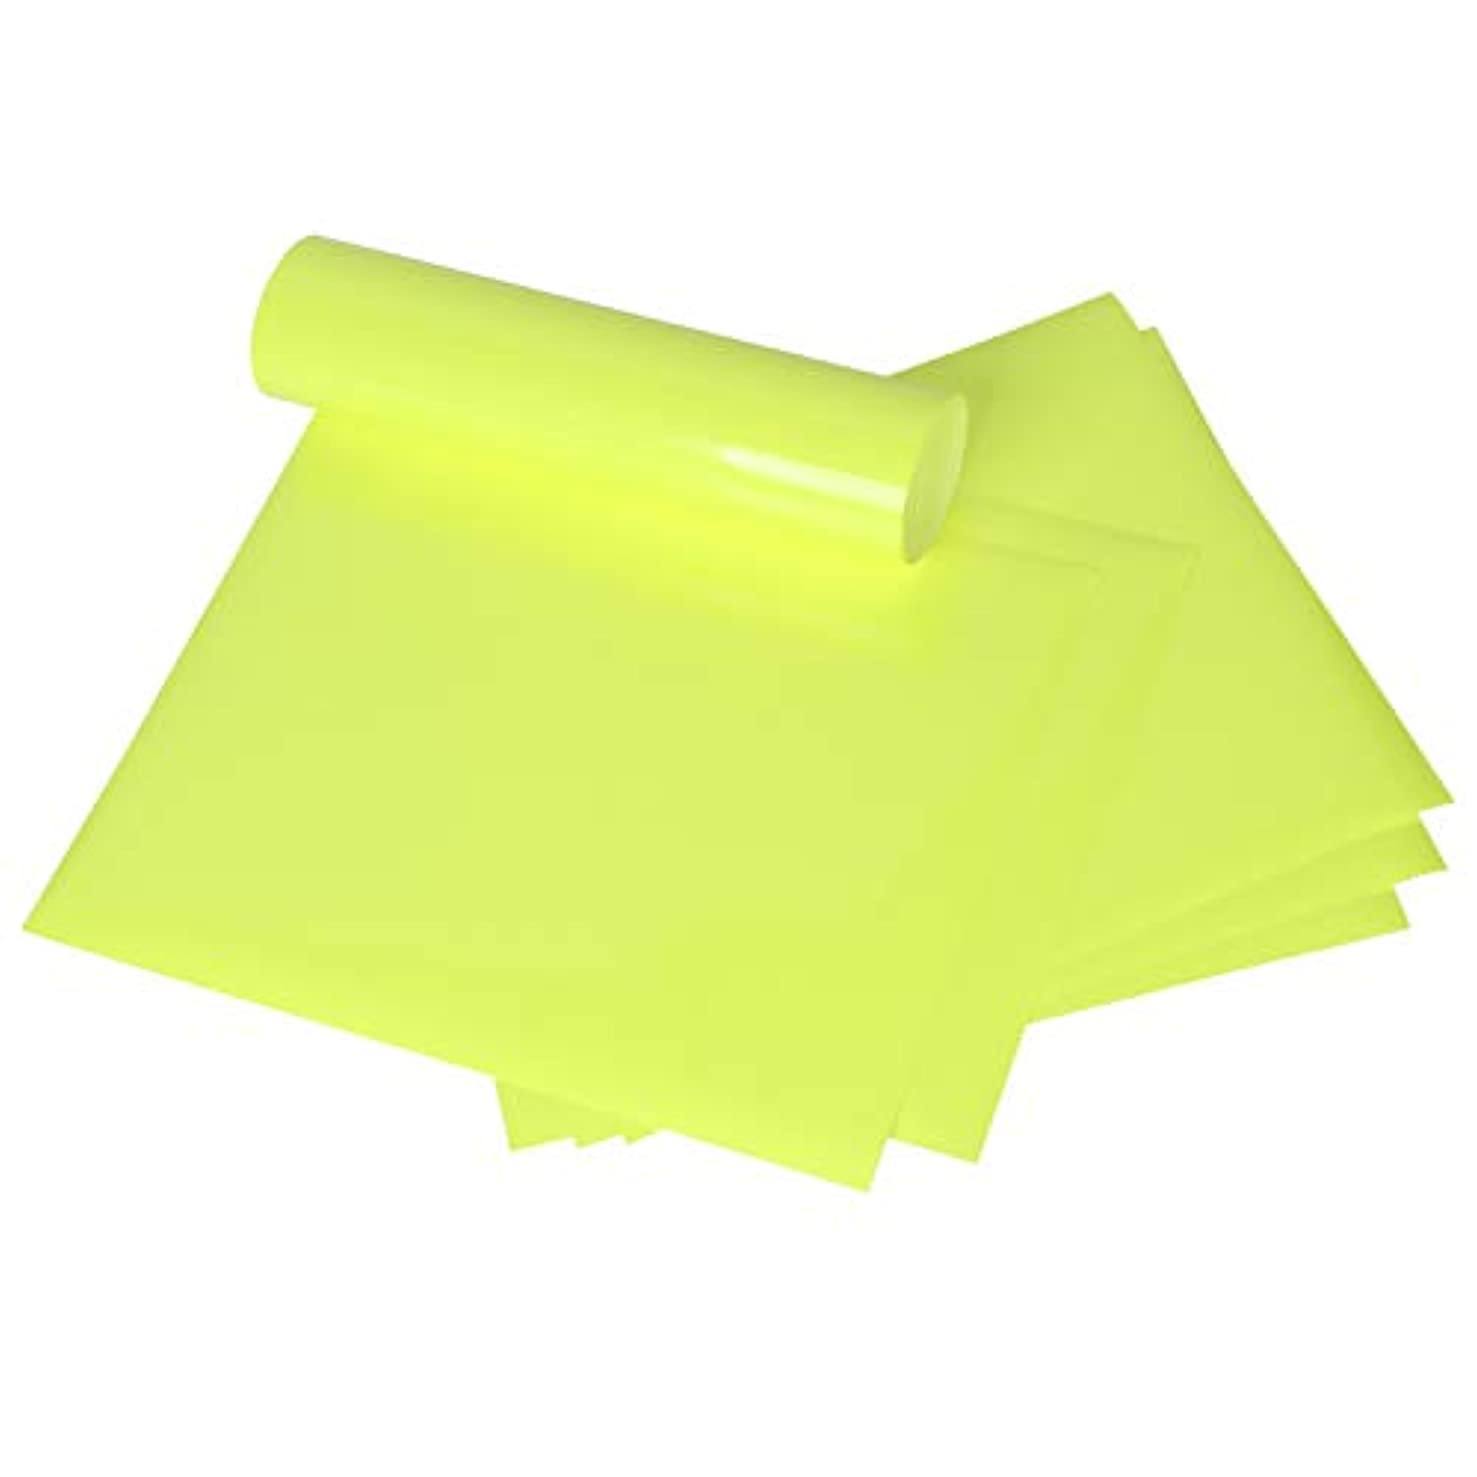 MAYPLUSS Heat Transfer Vinyl Sheets - Easy to Weed Iron on HTV for T-Shirts, Craft Garment Heat Press - 10 x 12 Inches, 6 Sheets - Fluorescent Yellow